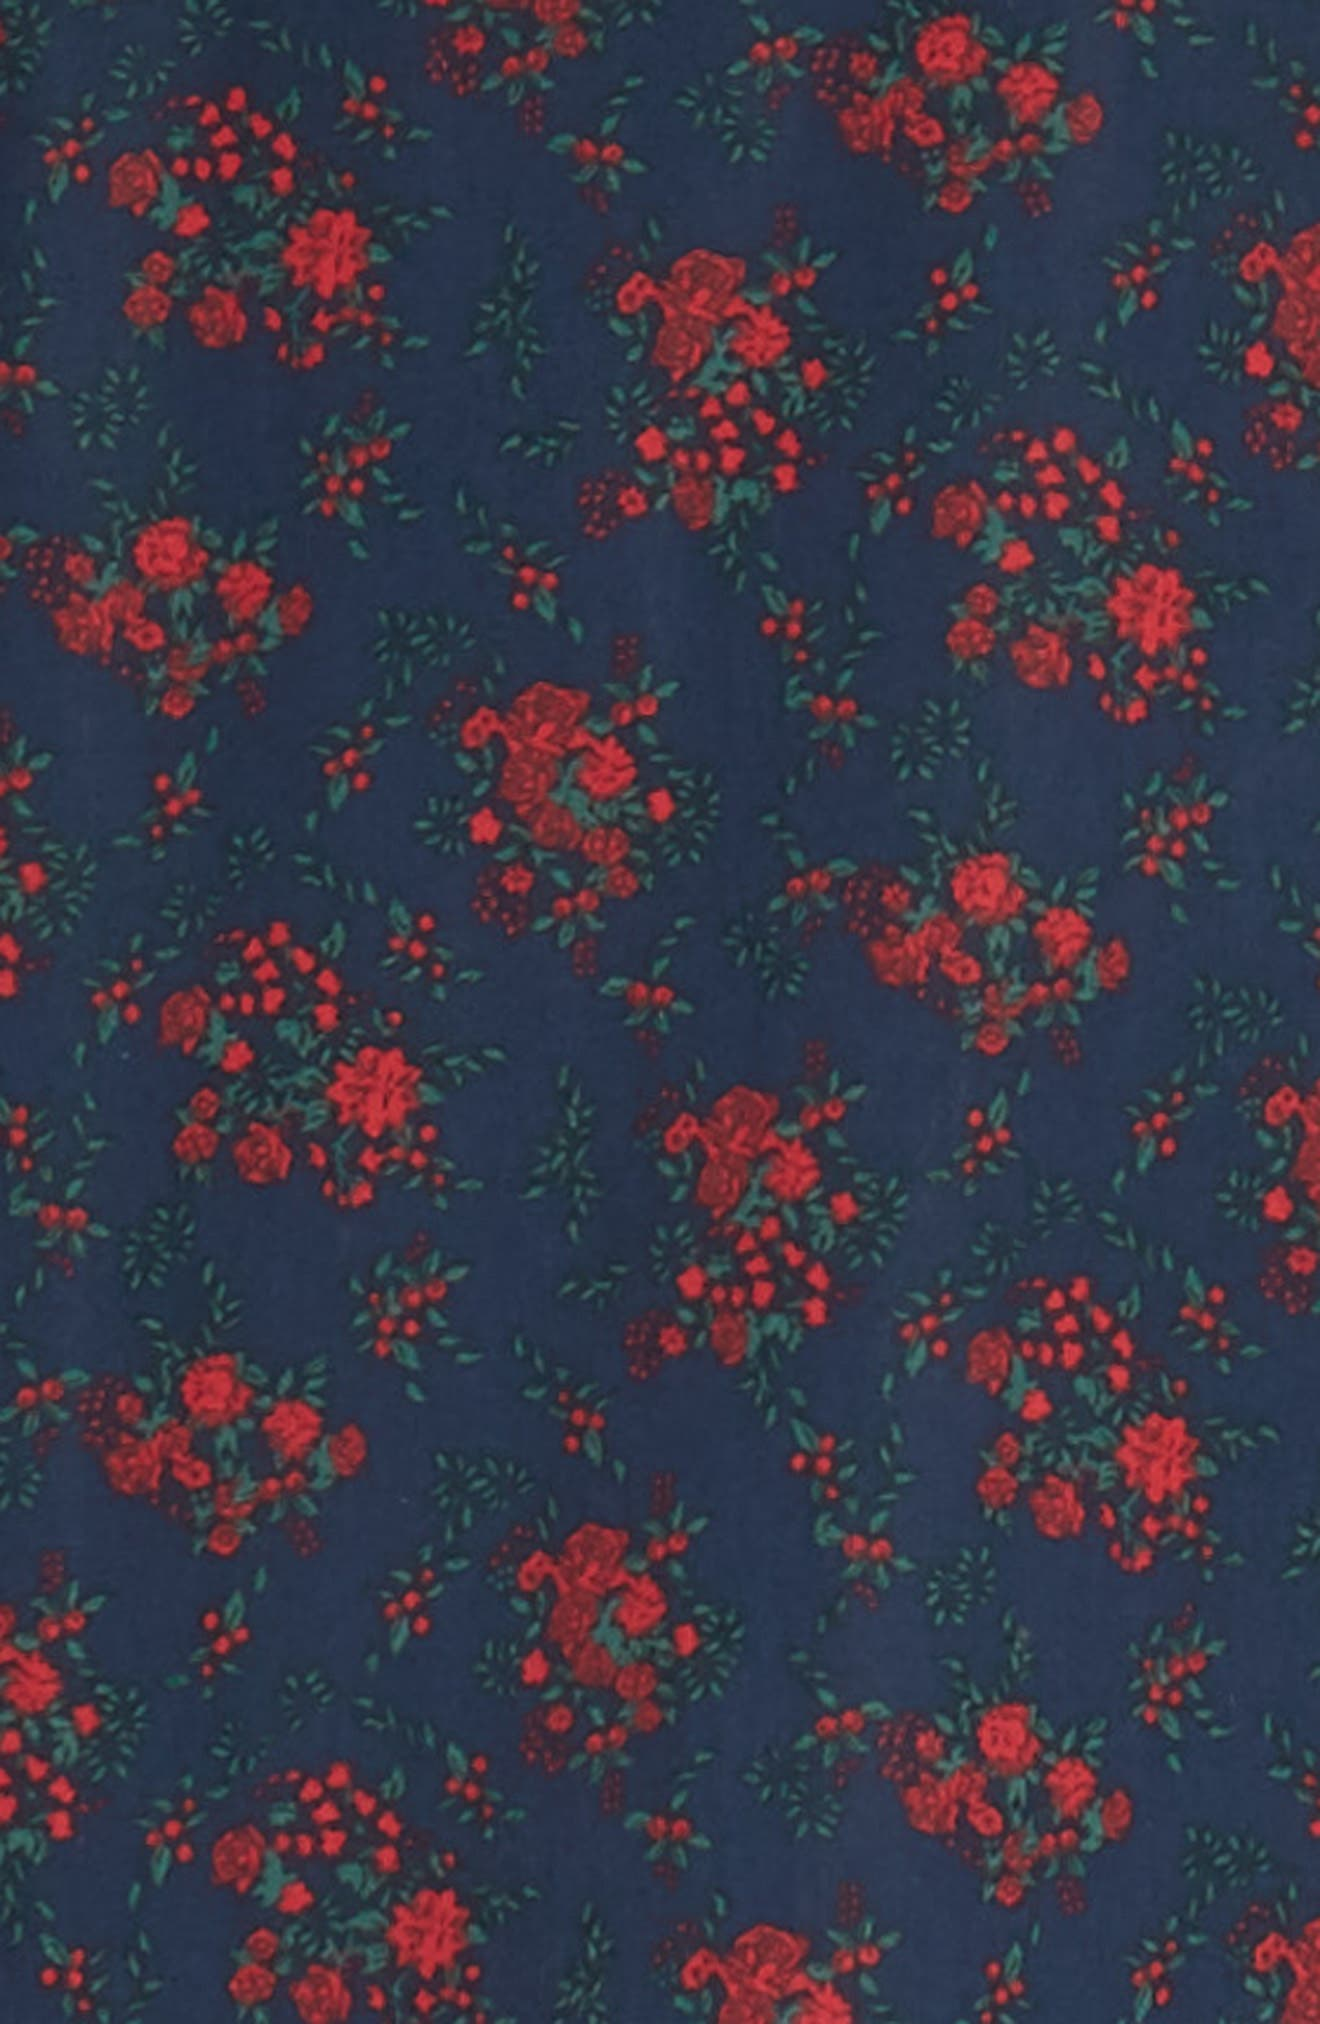 Slim Fit Print No-Iron Sport Shirt,                             Alternate thumbnail 6, color,                             NAVY NIGHT RED FLORAL